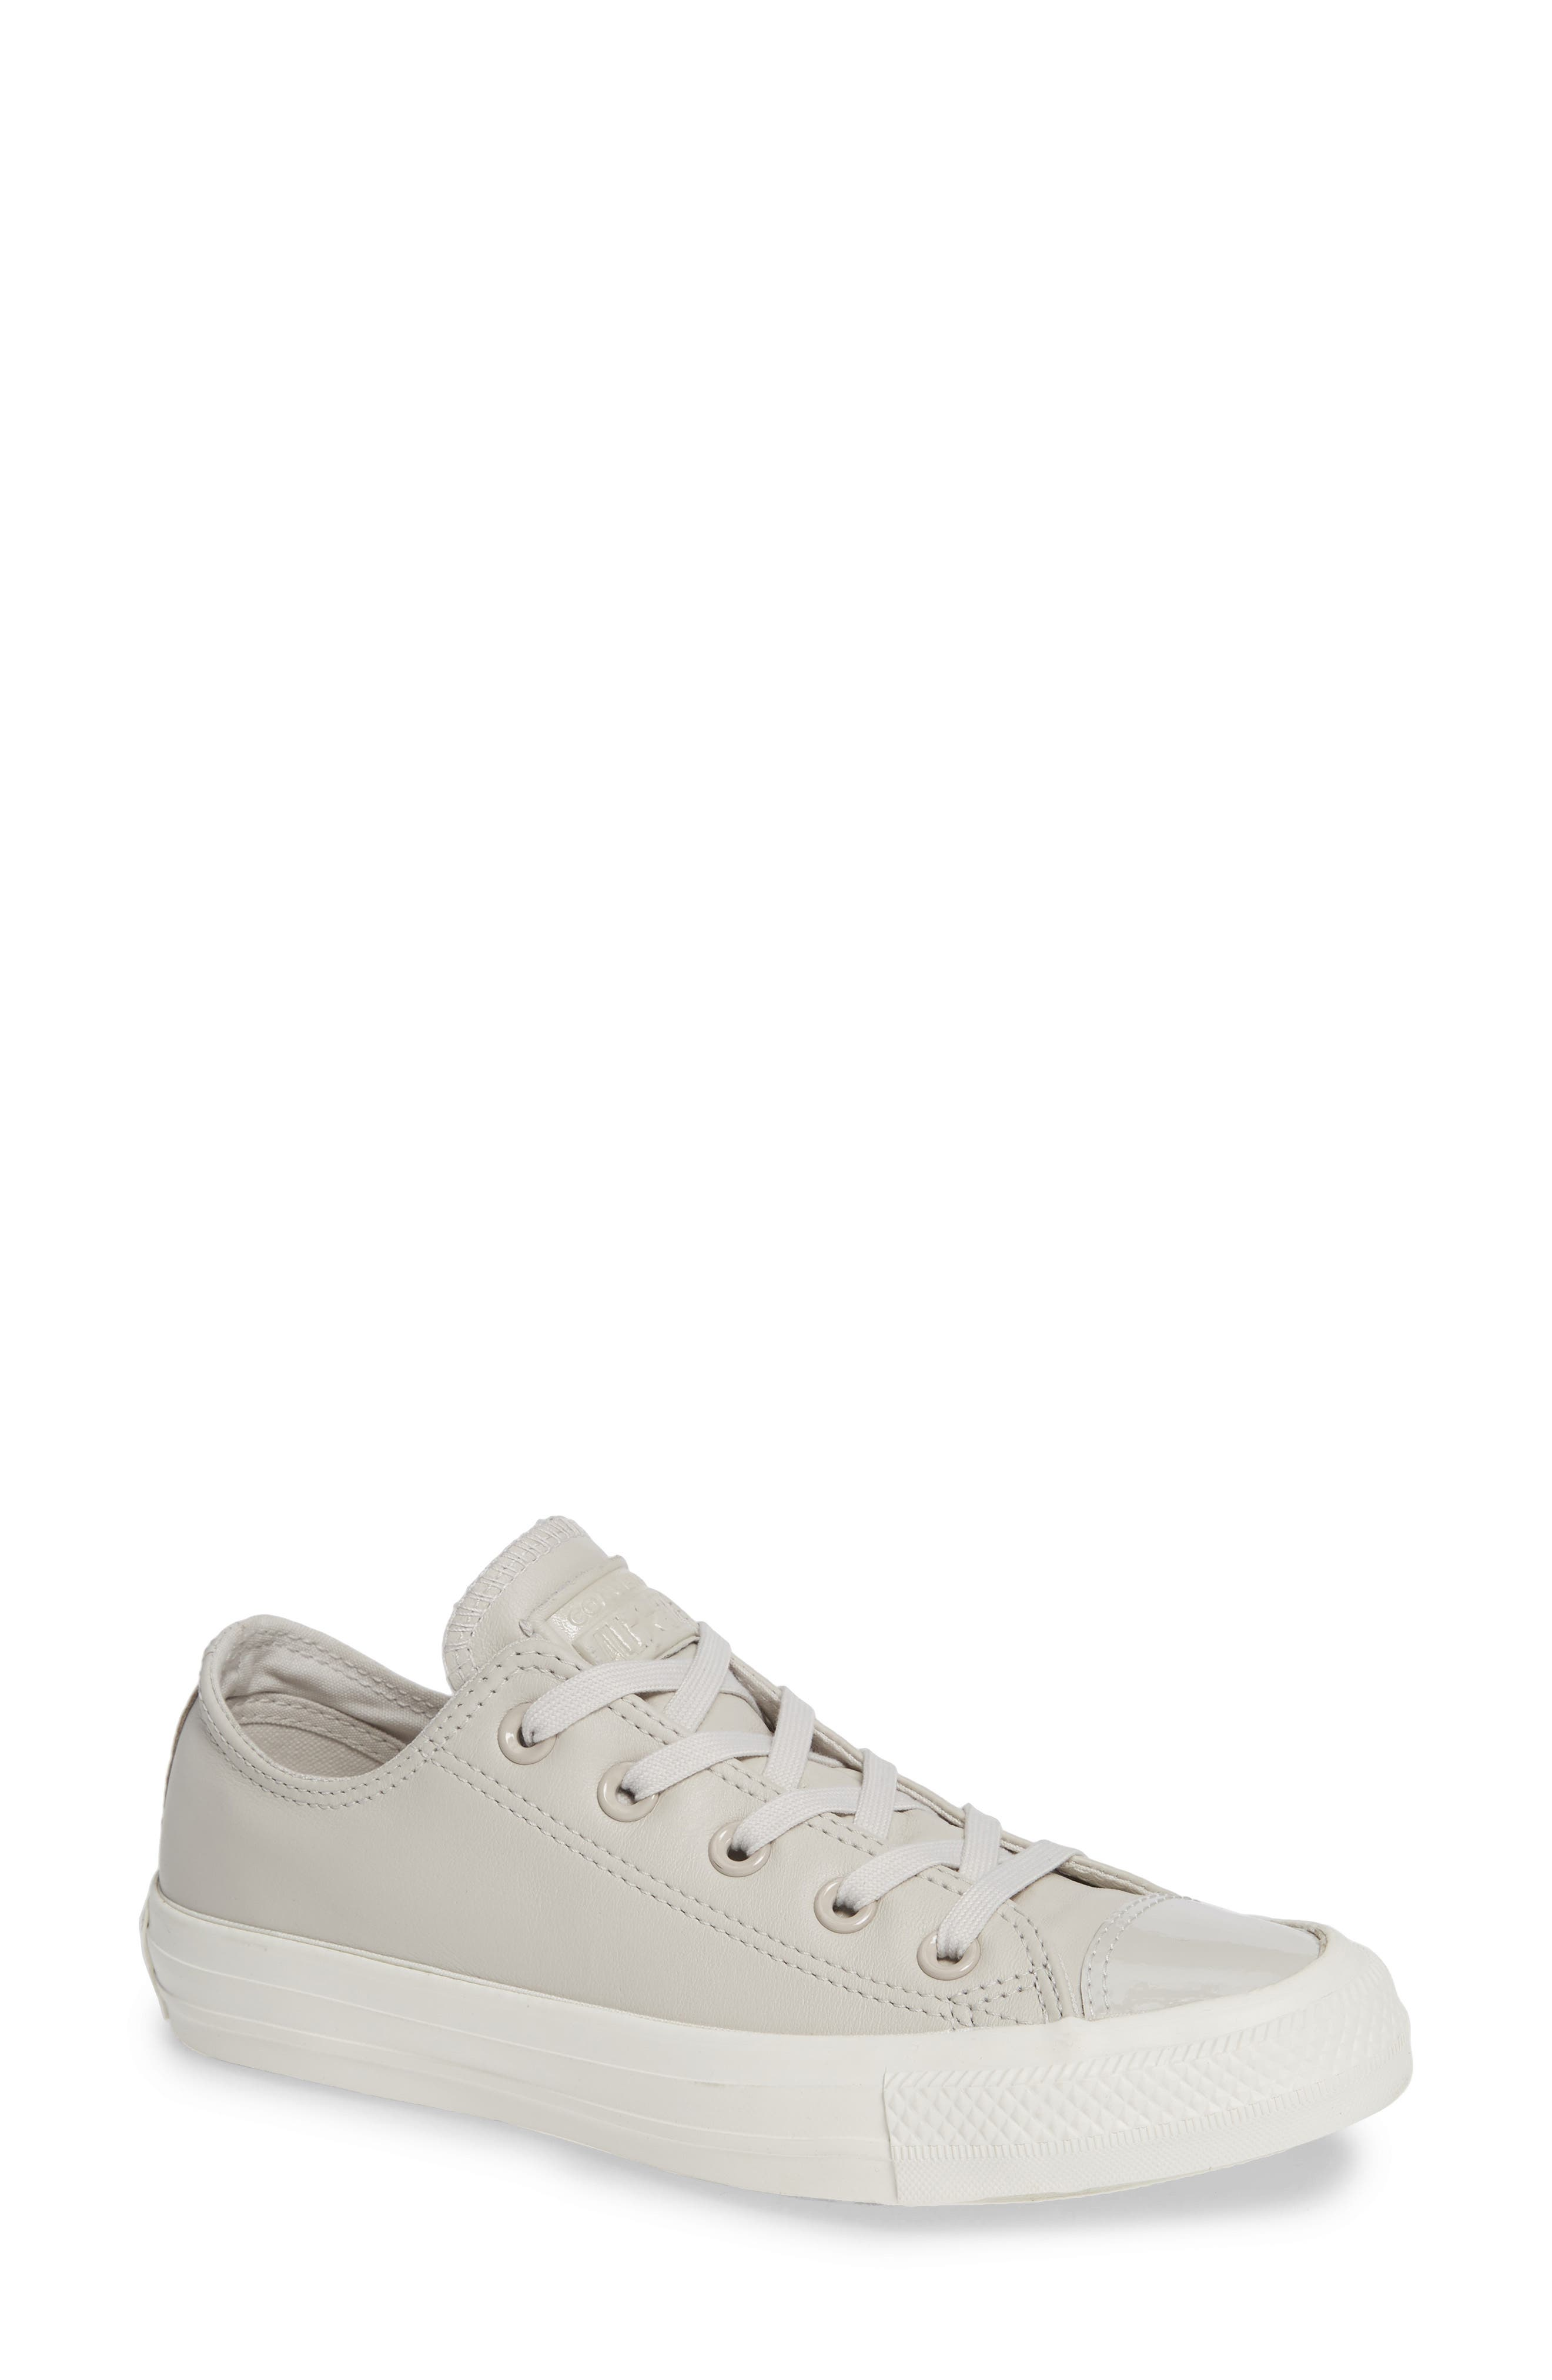 1c0493e932fec6 ... coupon for converse all star leather patent low top sneaker women 5d123  0b598